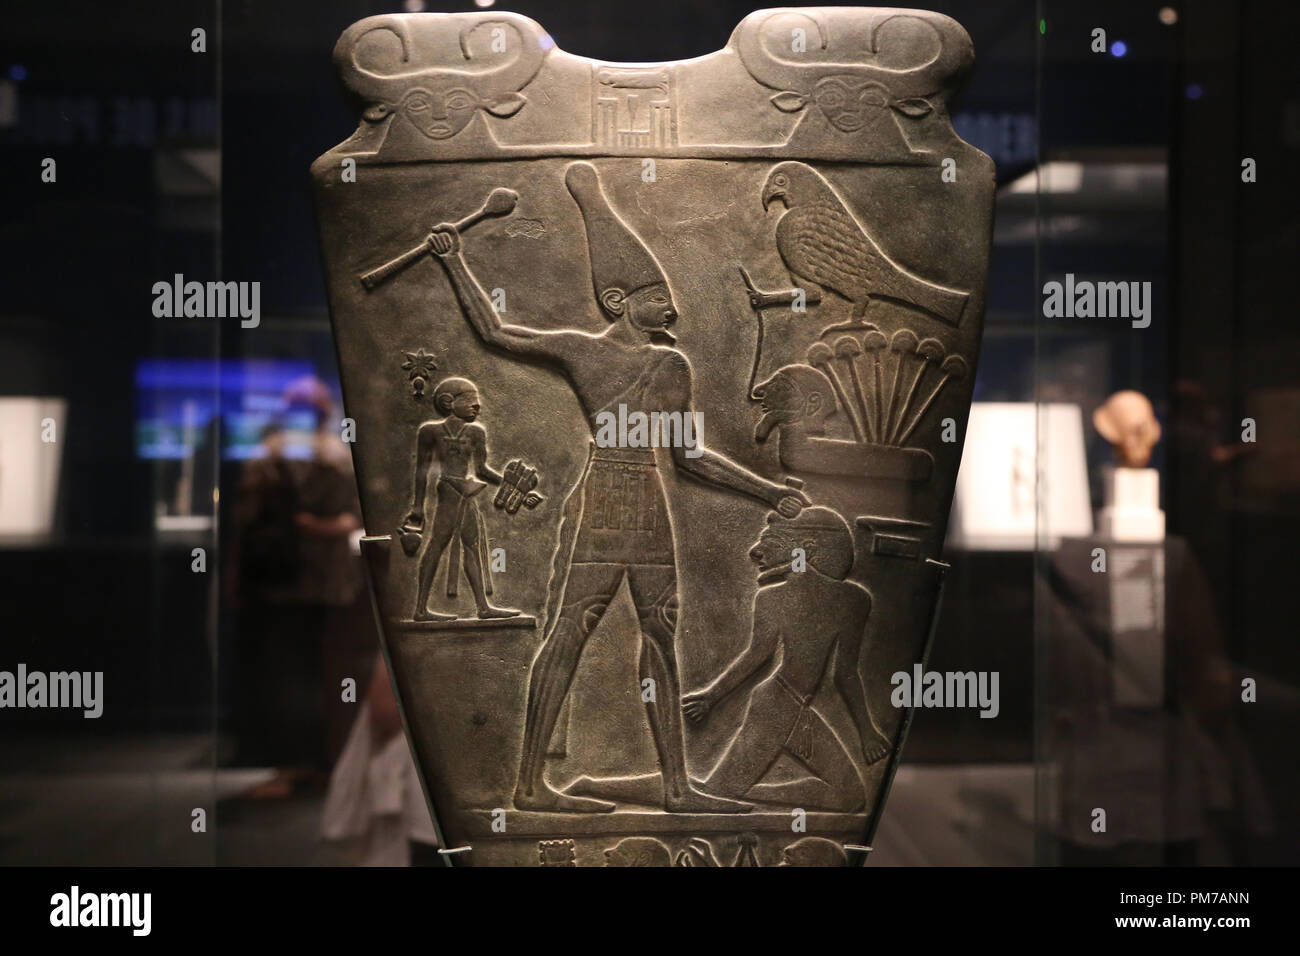 Ancient Egypt. Narmer Palette (recto). Siltstone. 3200 BC. 1st Dynasty. Early Dynastic Period. Replica. Egyptian Museum. Cairo. - Stock Image